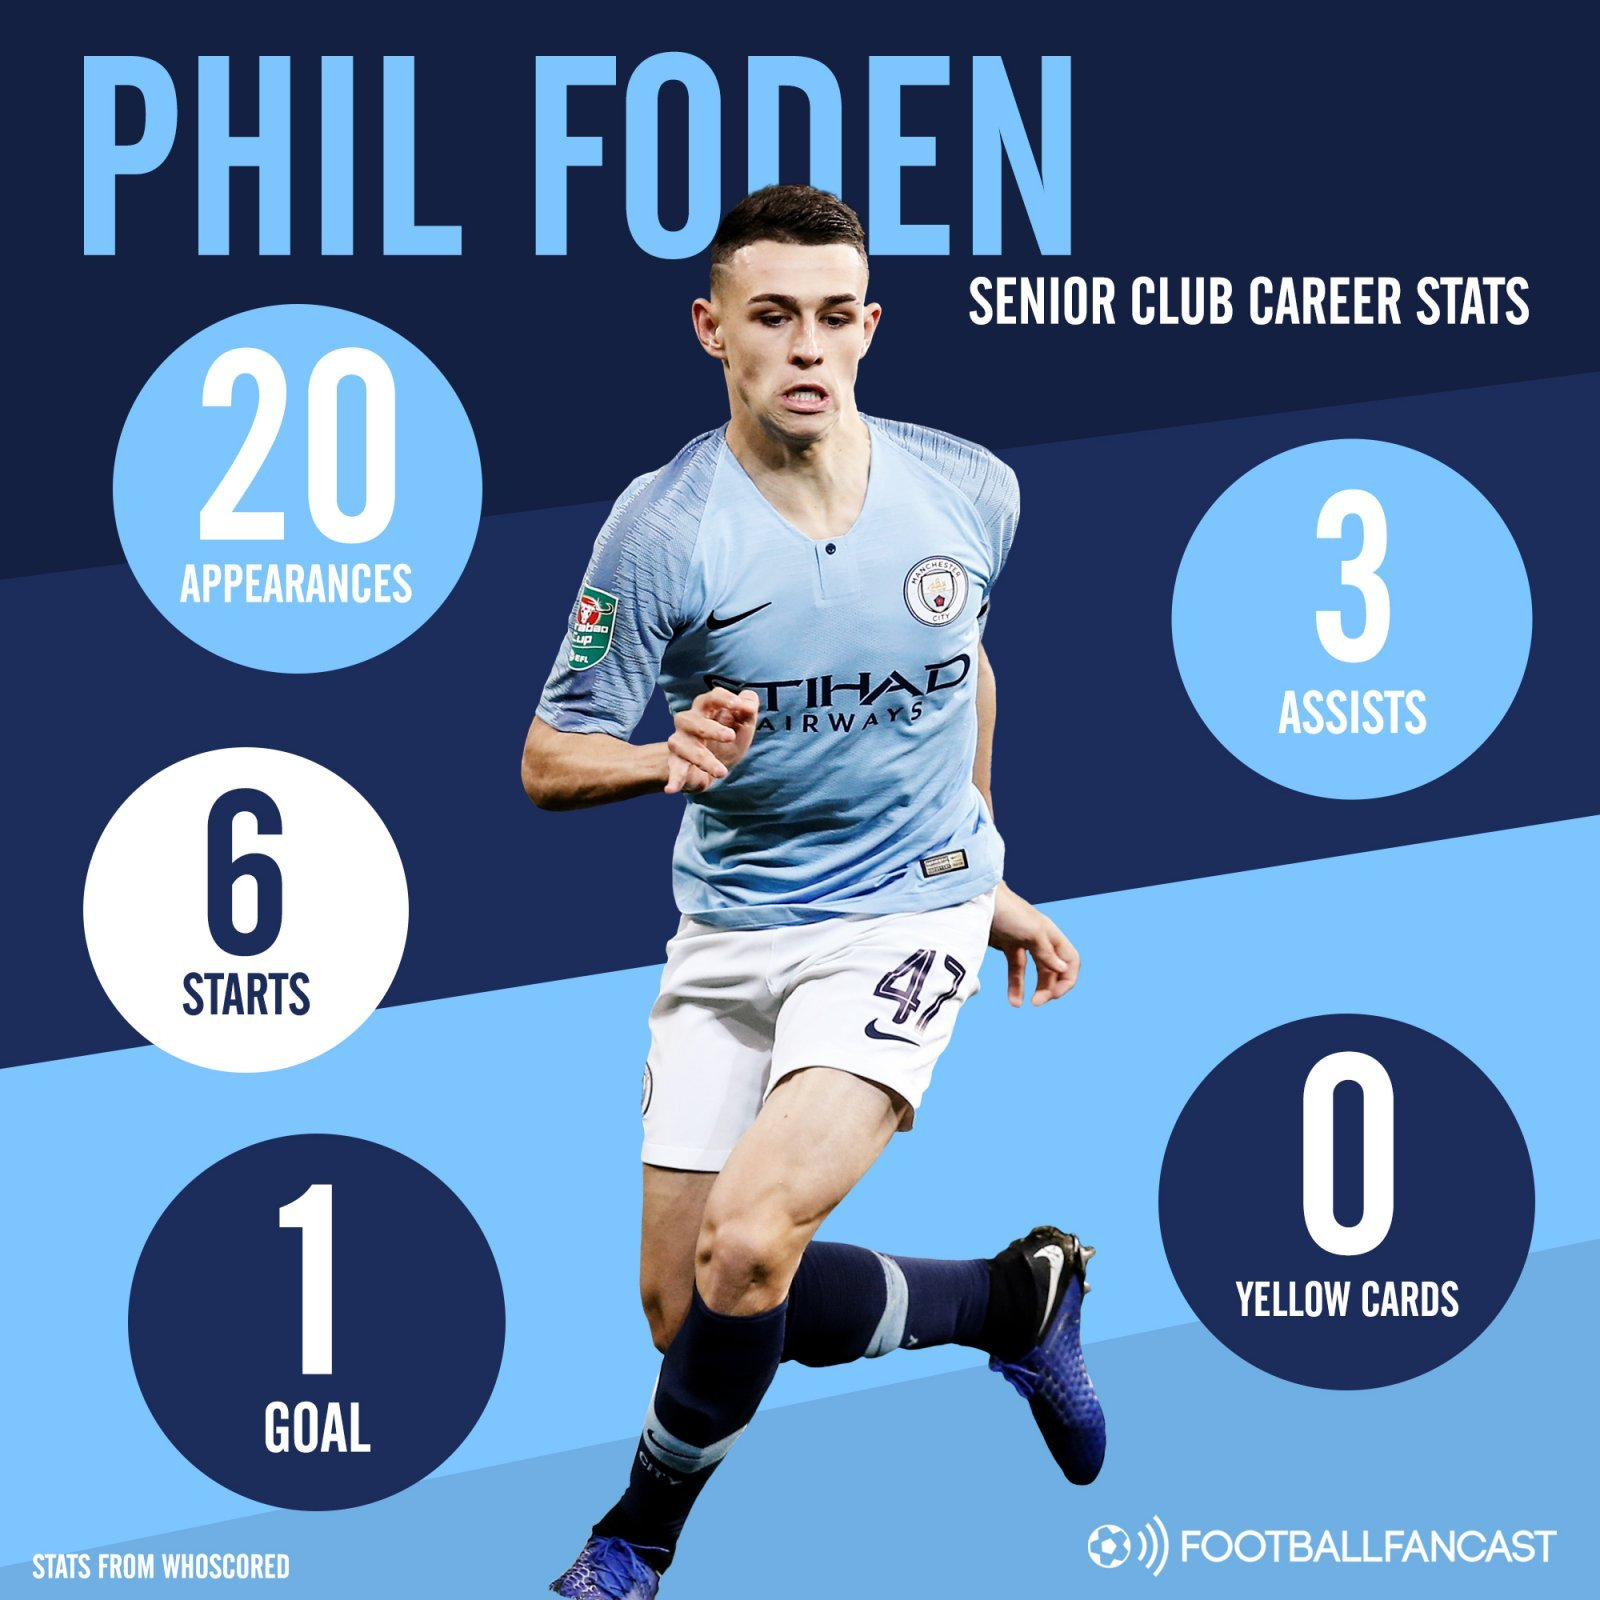 Phil Foden - Career Stats